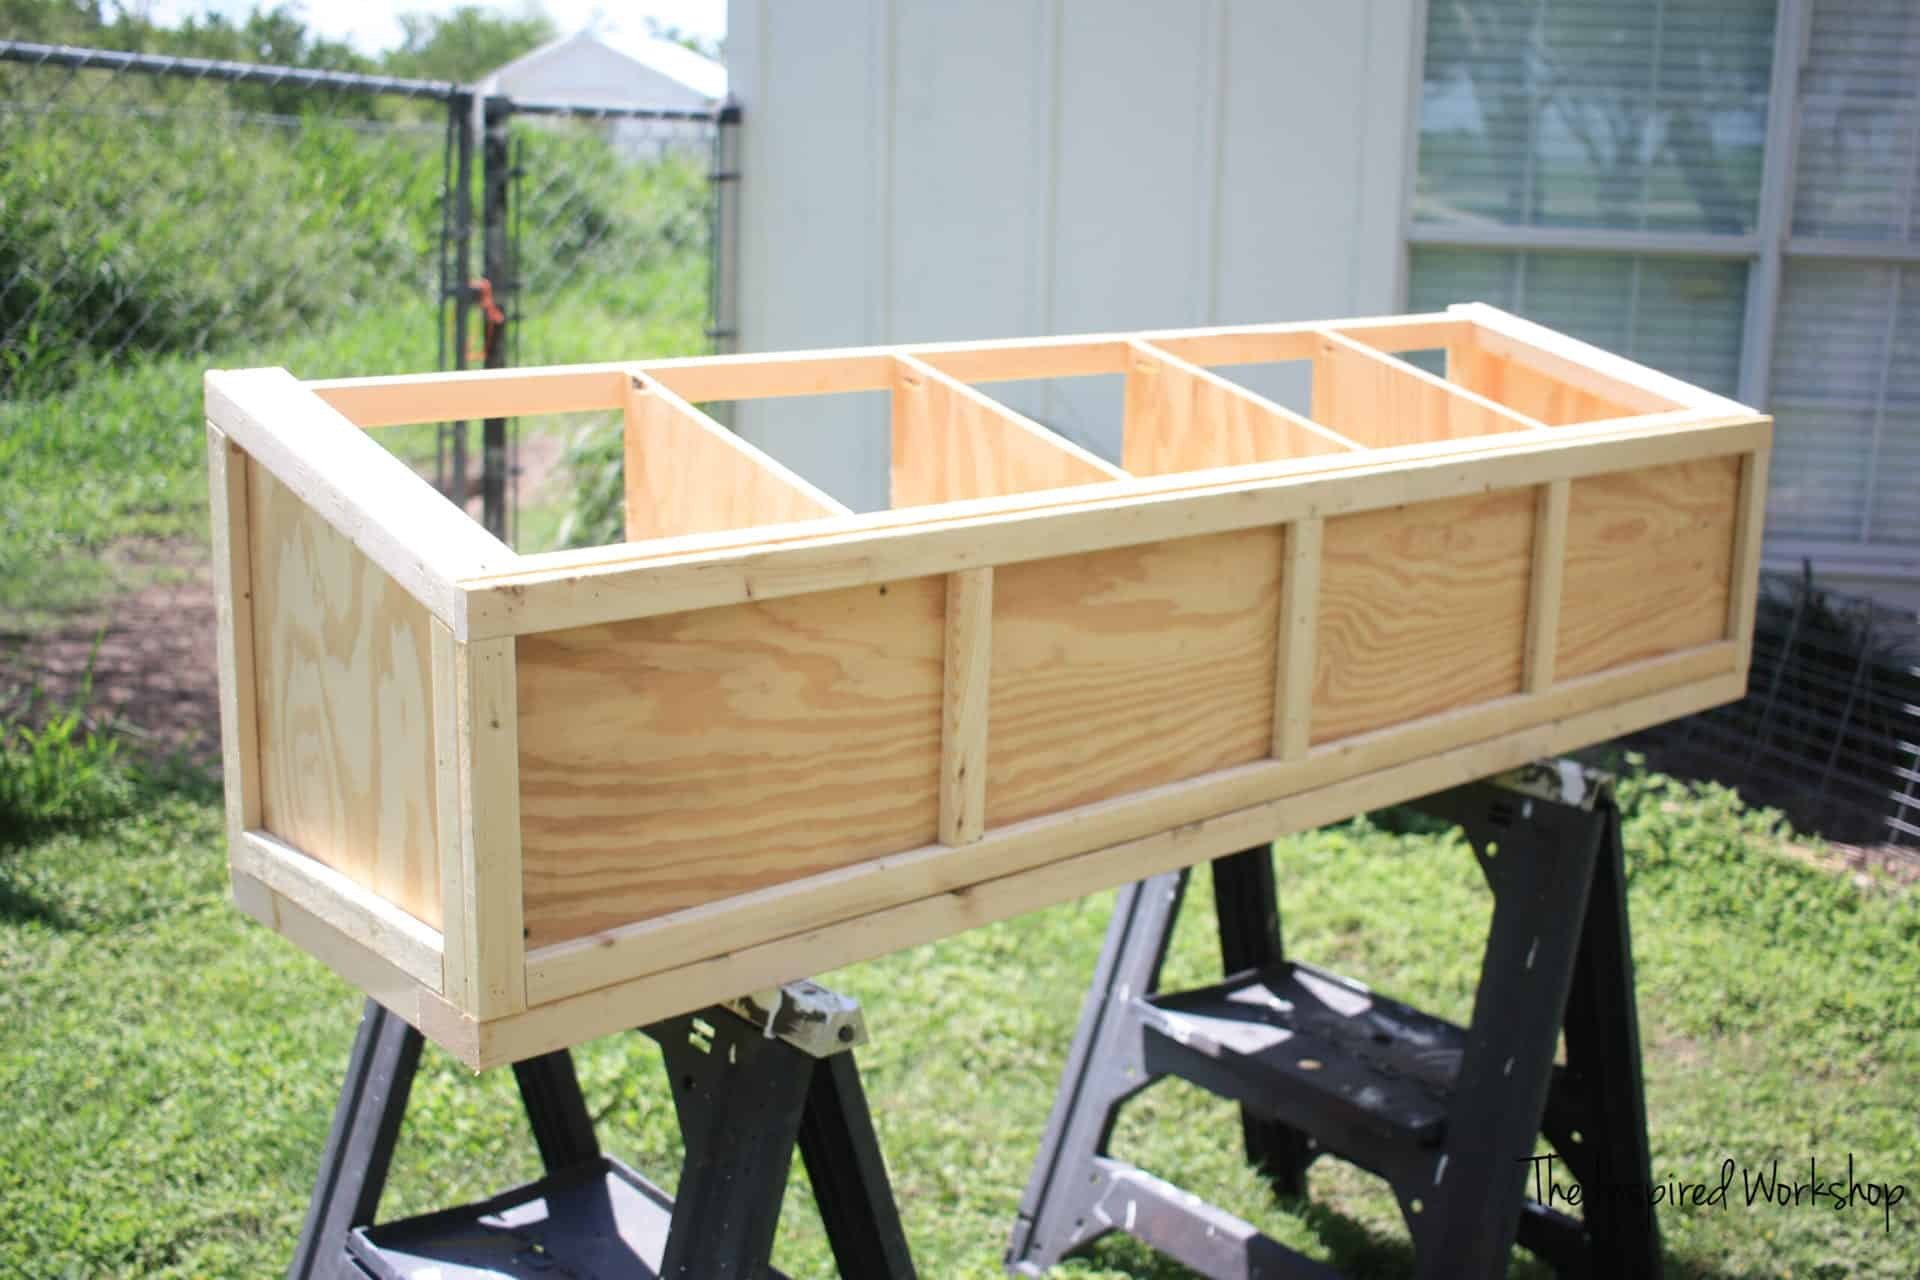 DIY Nesting Boxes for Chicken Coop